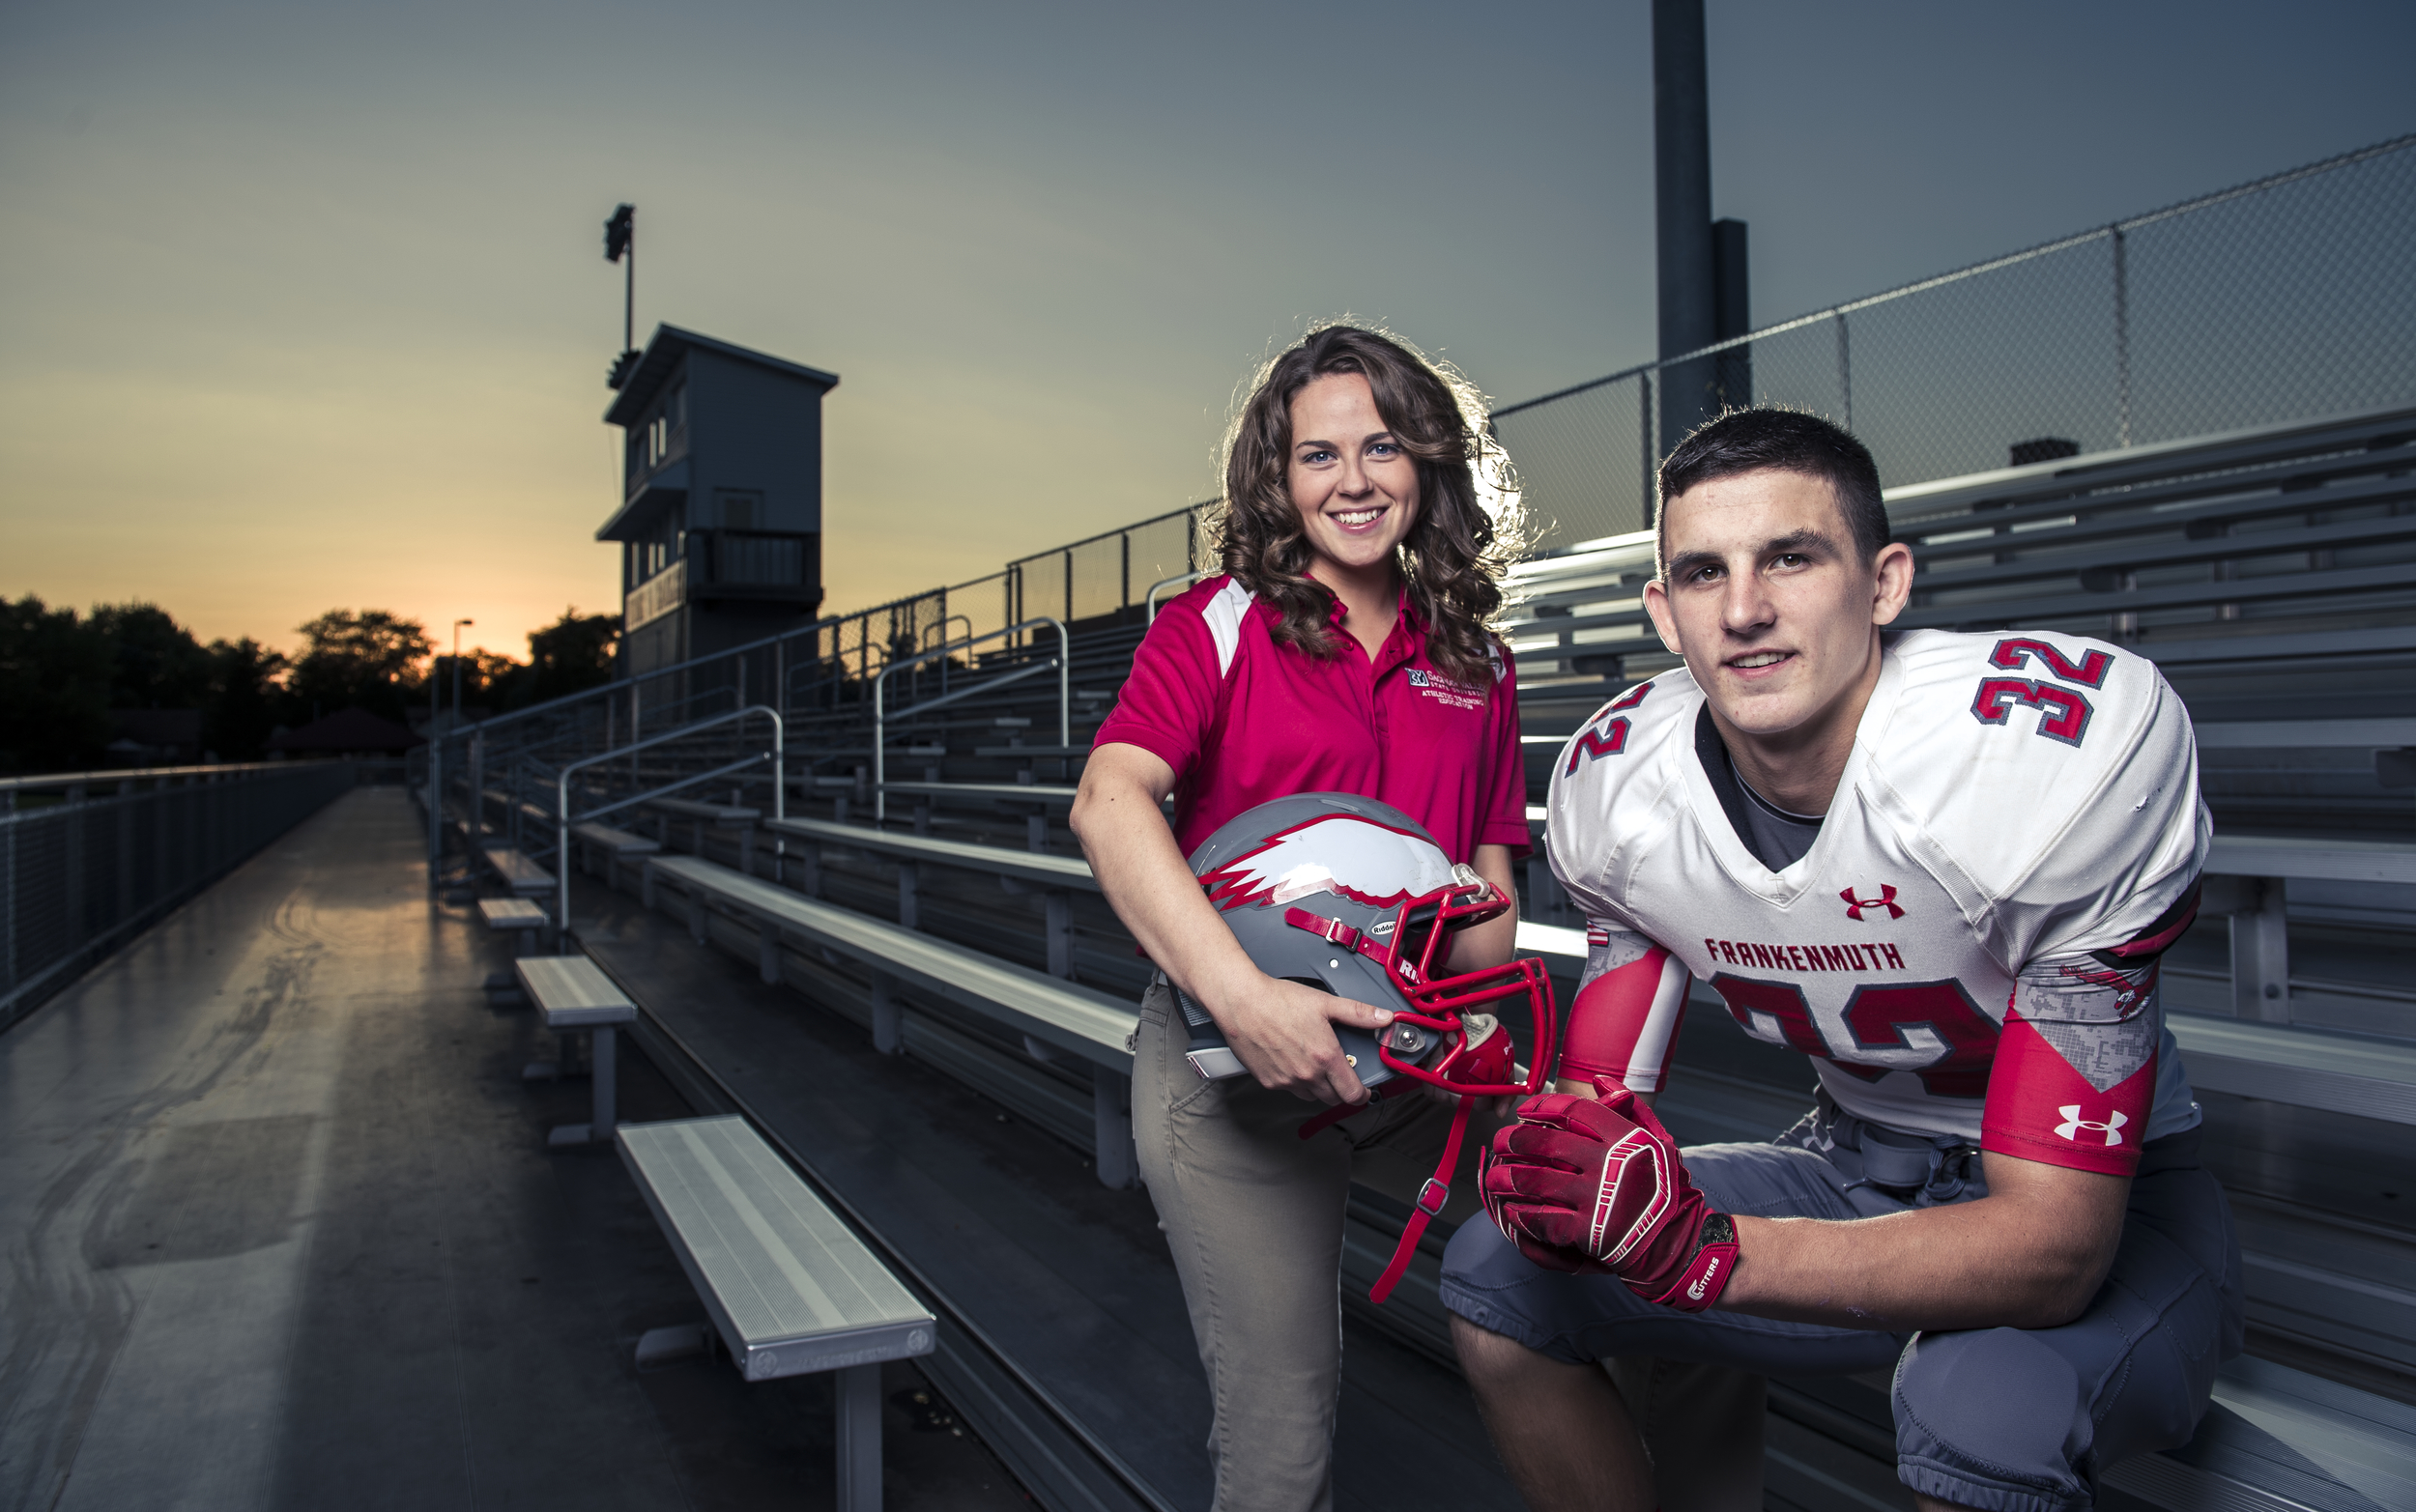 Athletic Training Billboard 9-14 by Michael Randolph DSC_1942.JPG